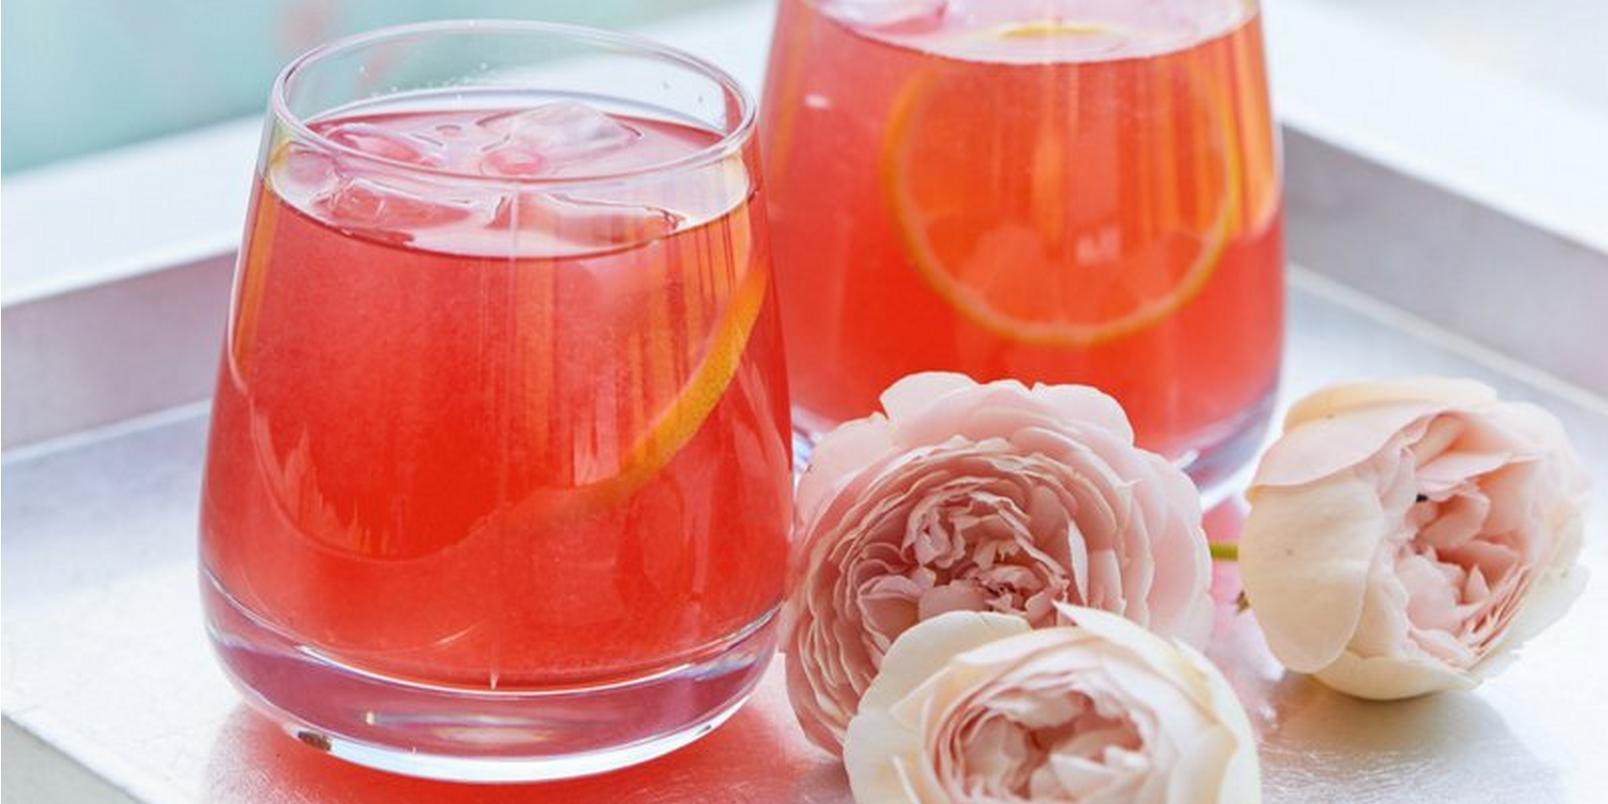 6-Floral-Cocktail-Recipes-Youll-Love-This-Summer10